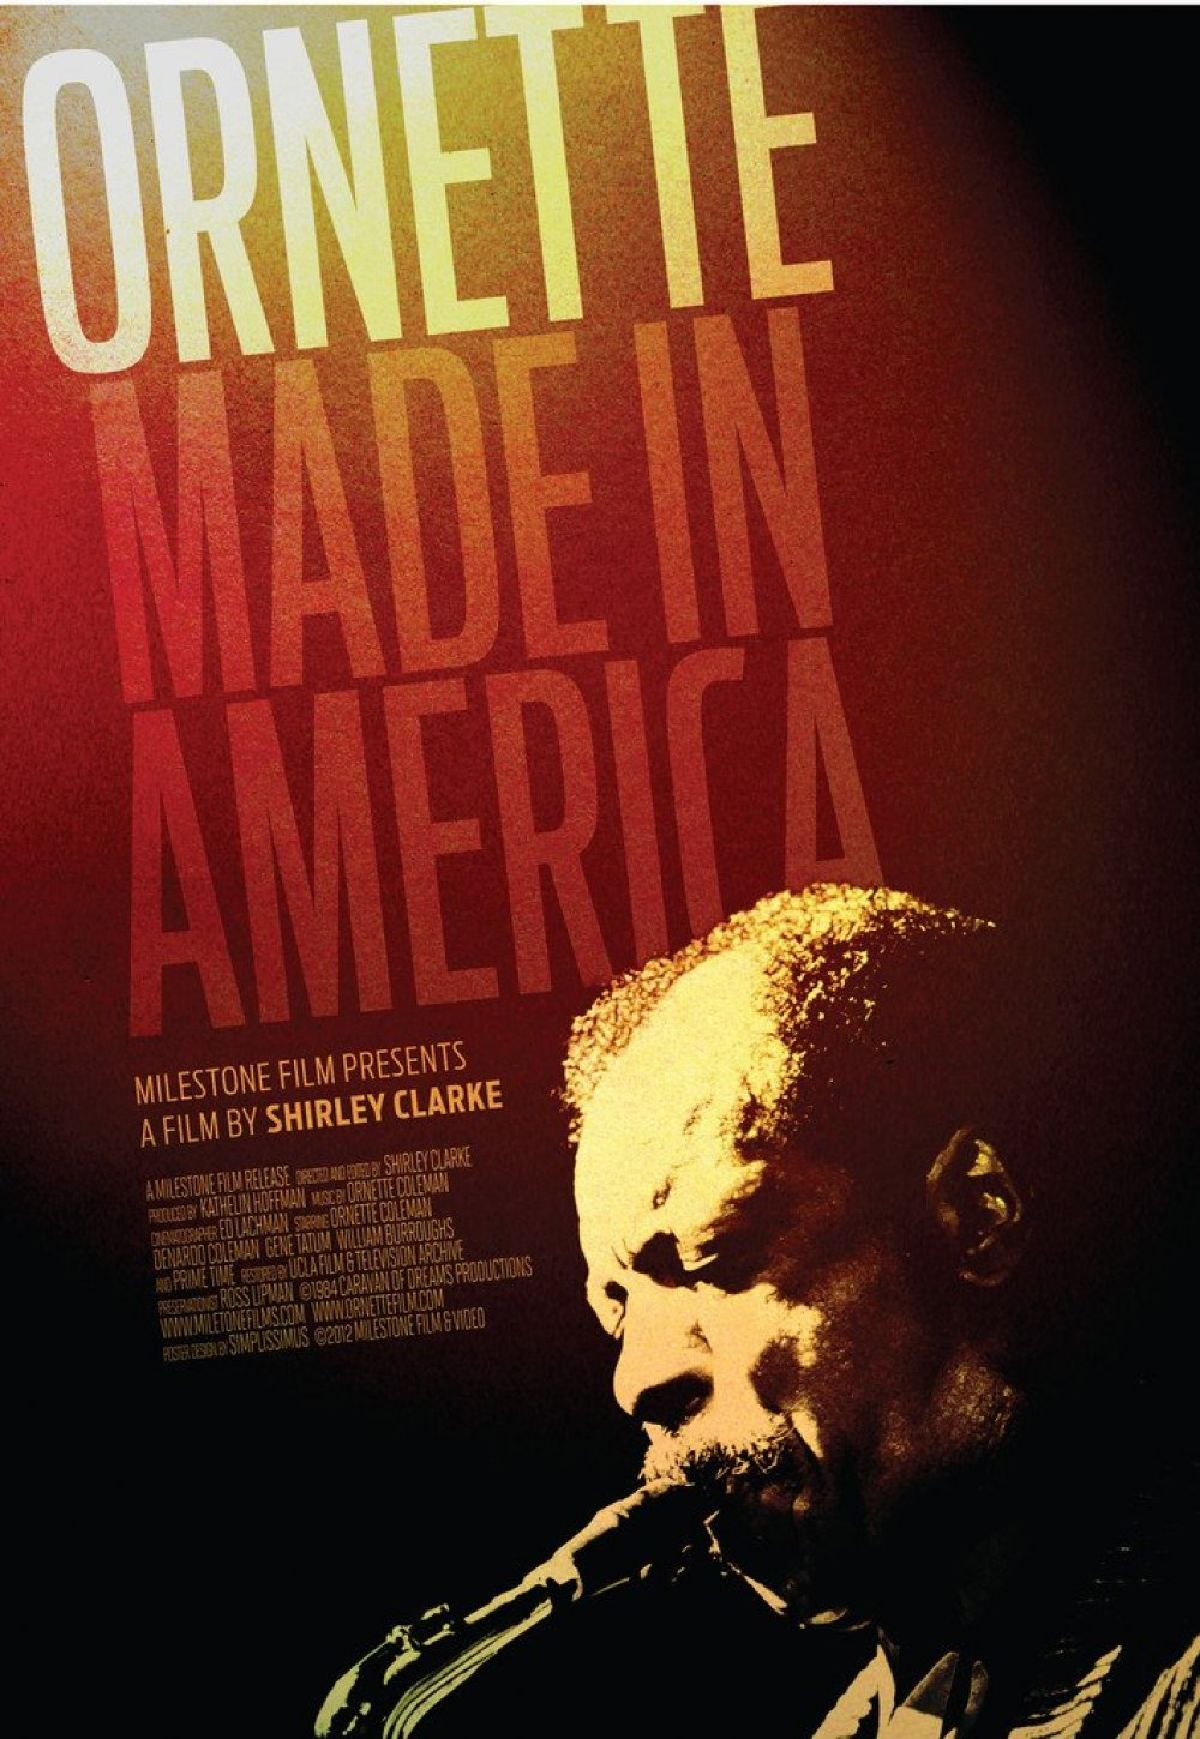 'Ornette: Made in America' movie poster